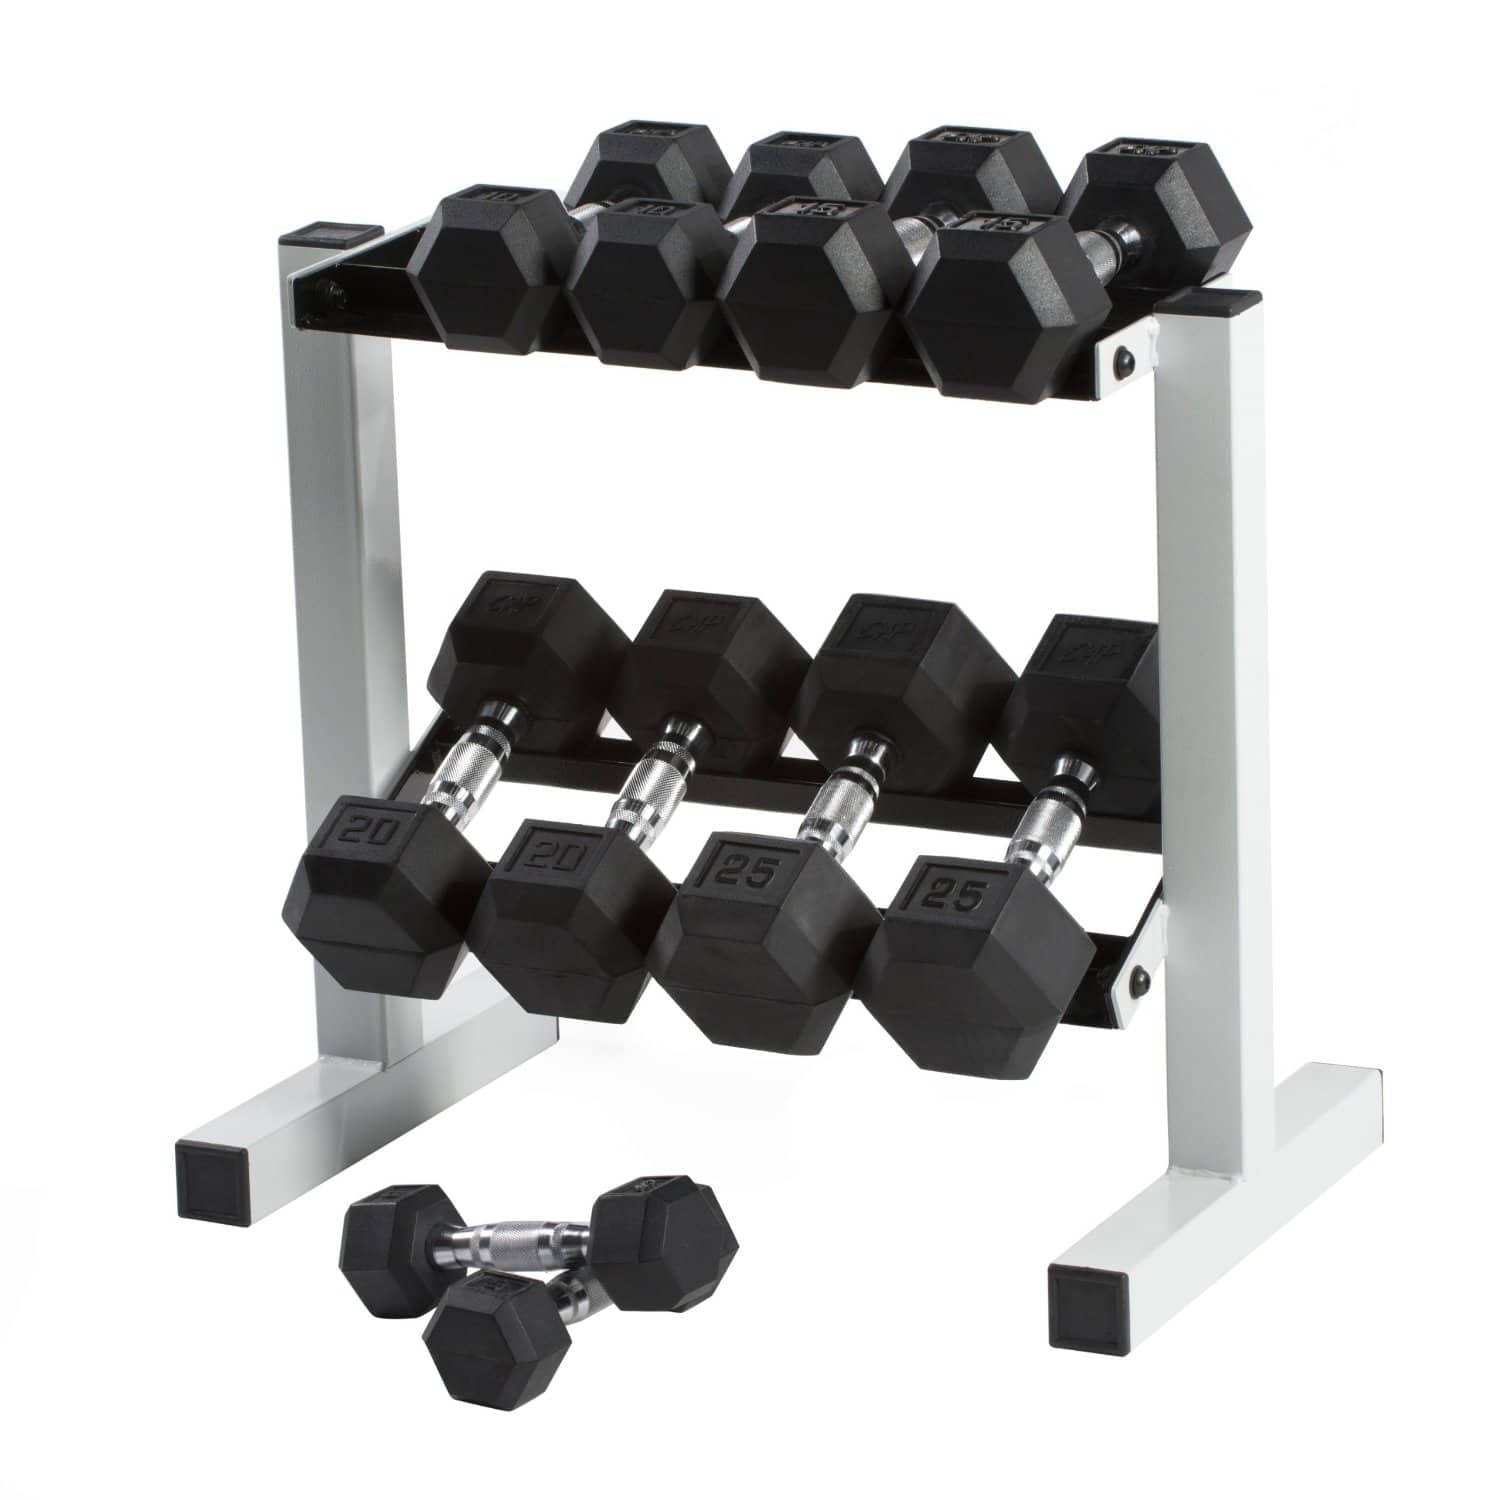 Rubber Dumbbell Set: 150-Pound CAP Barbell Cast Iron Rubber Hex Dumbbell Set